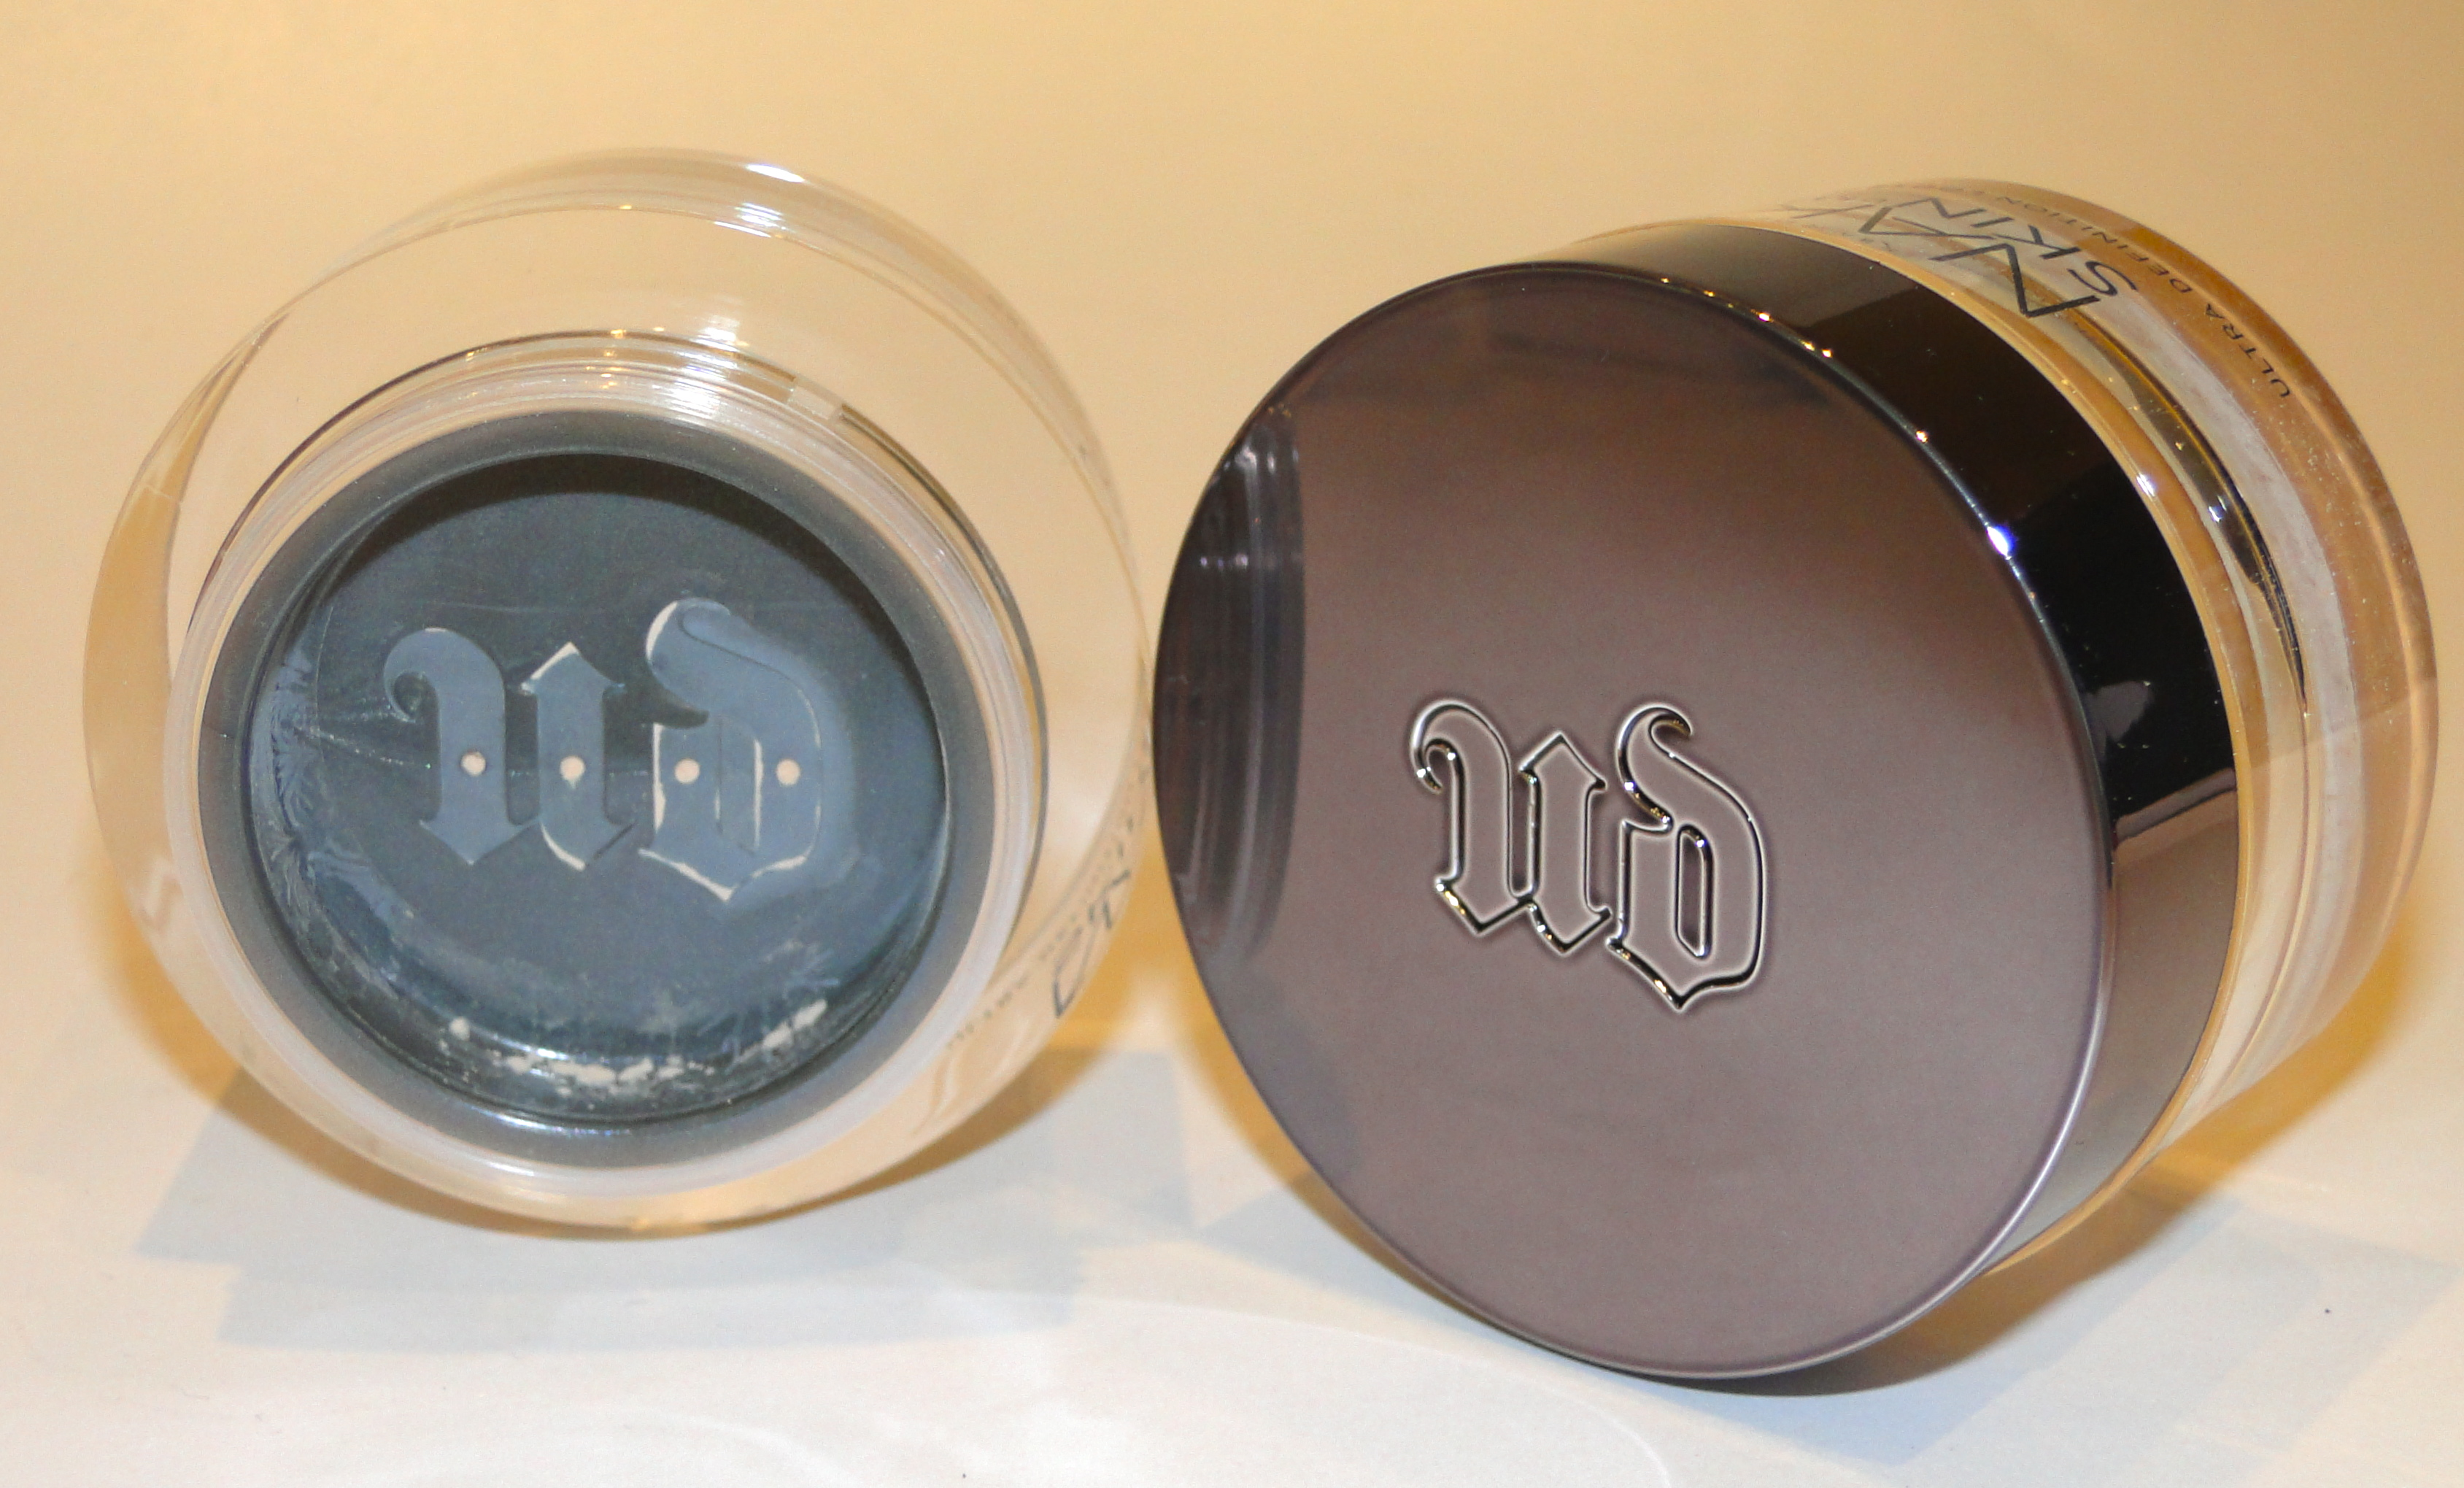 Naked Skin Ultra Definition Loose Finishing Powder by Urban Decay #7